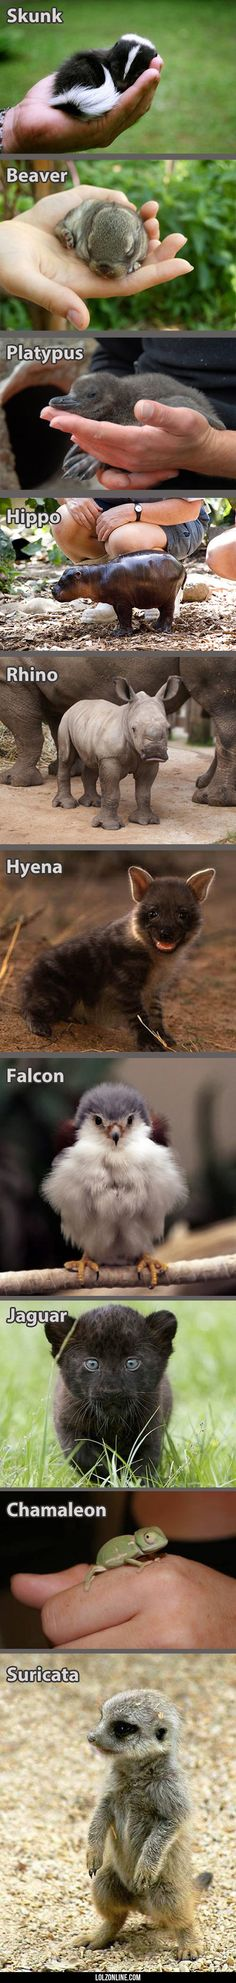 Animals Look So Much Better When Theyre Babies#funny #lol #lolzonline